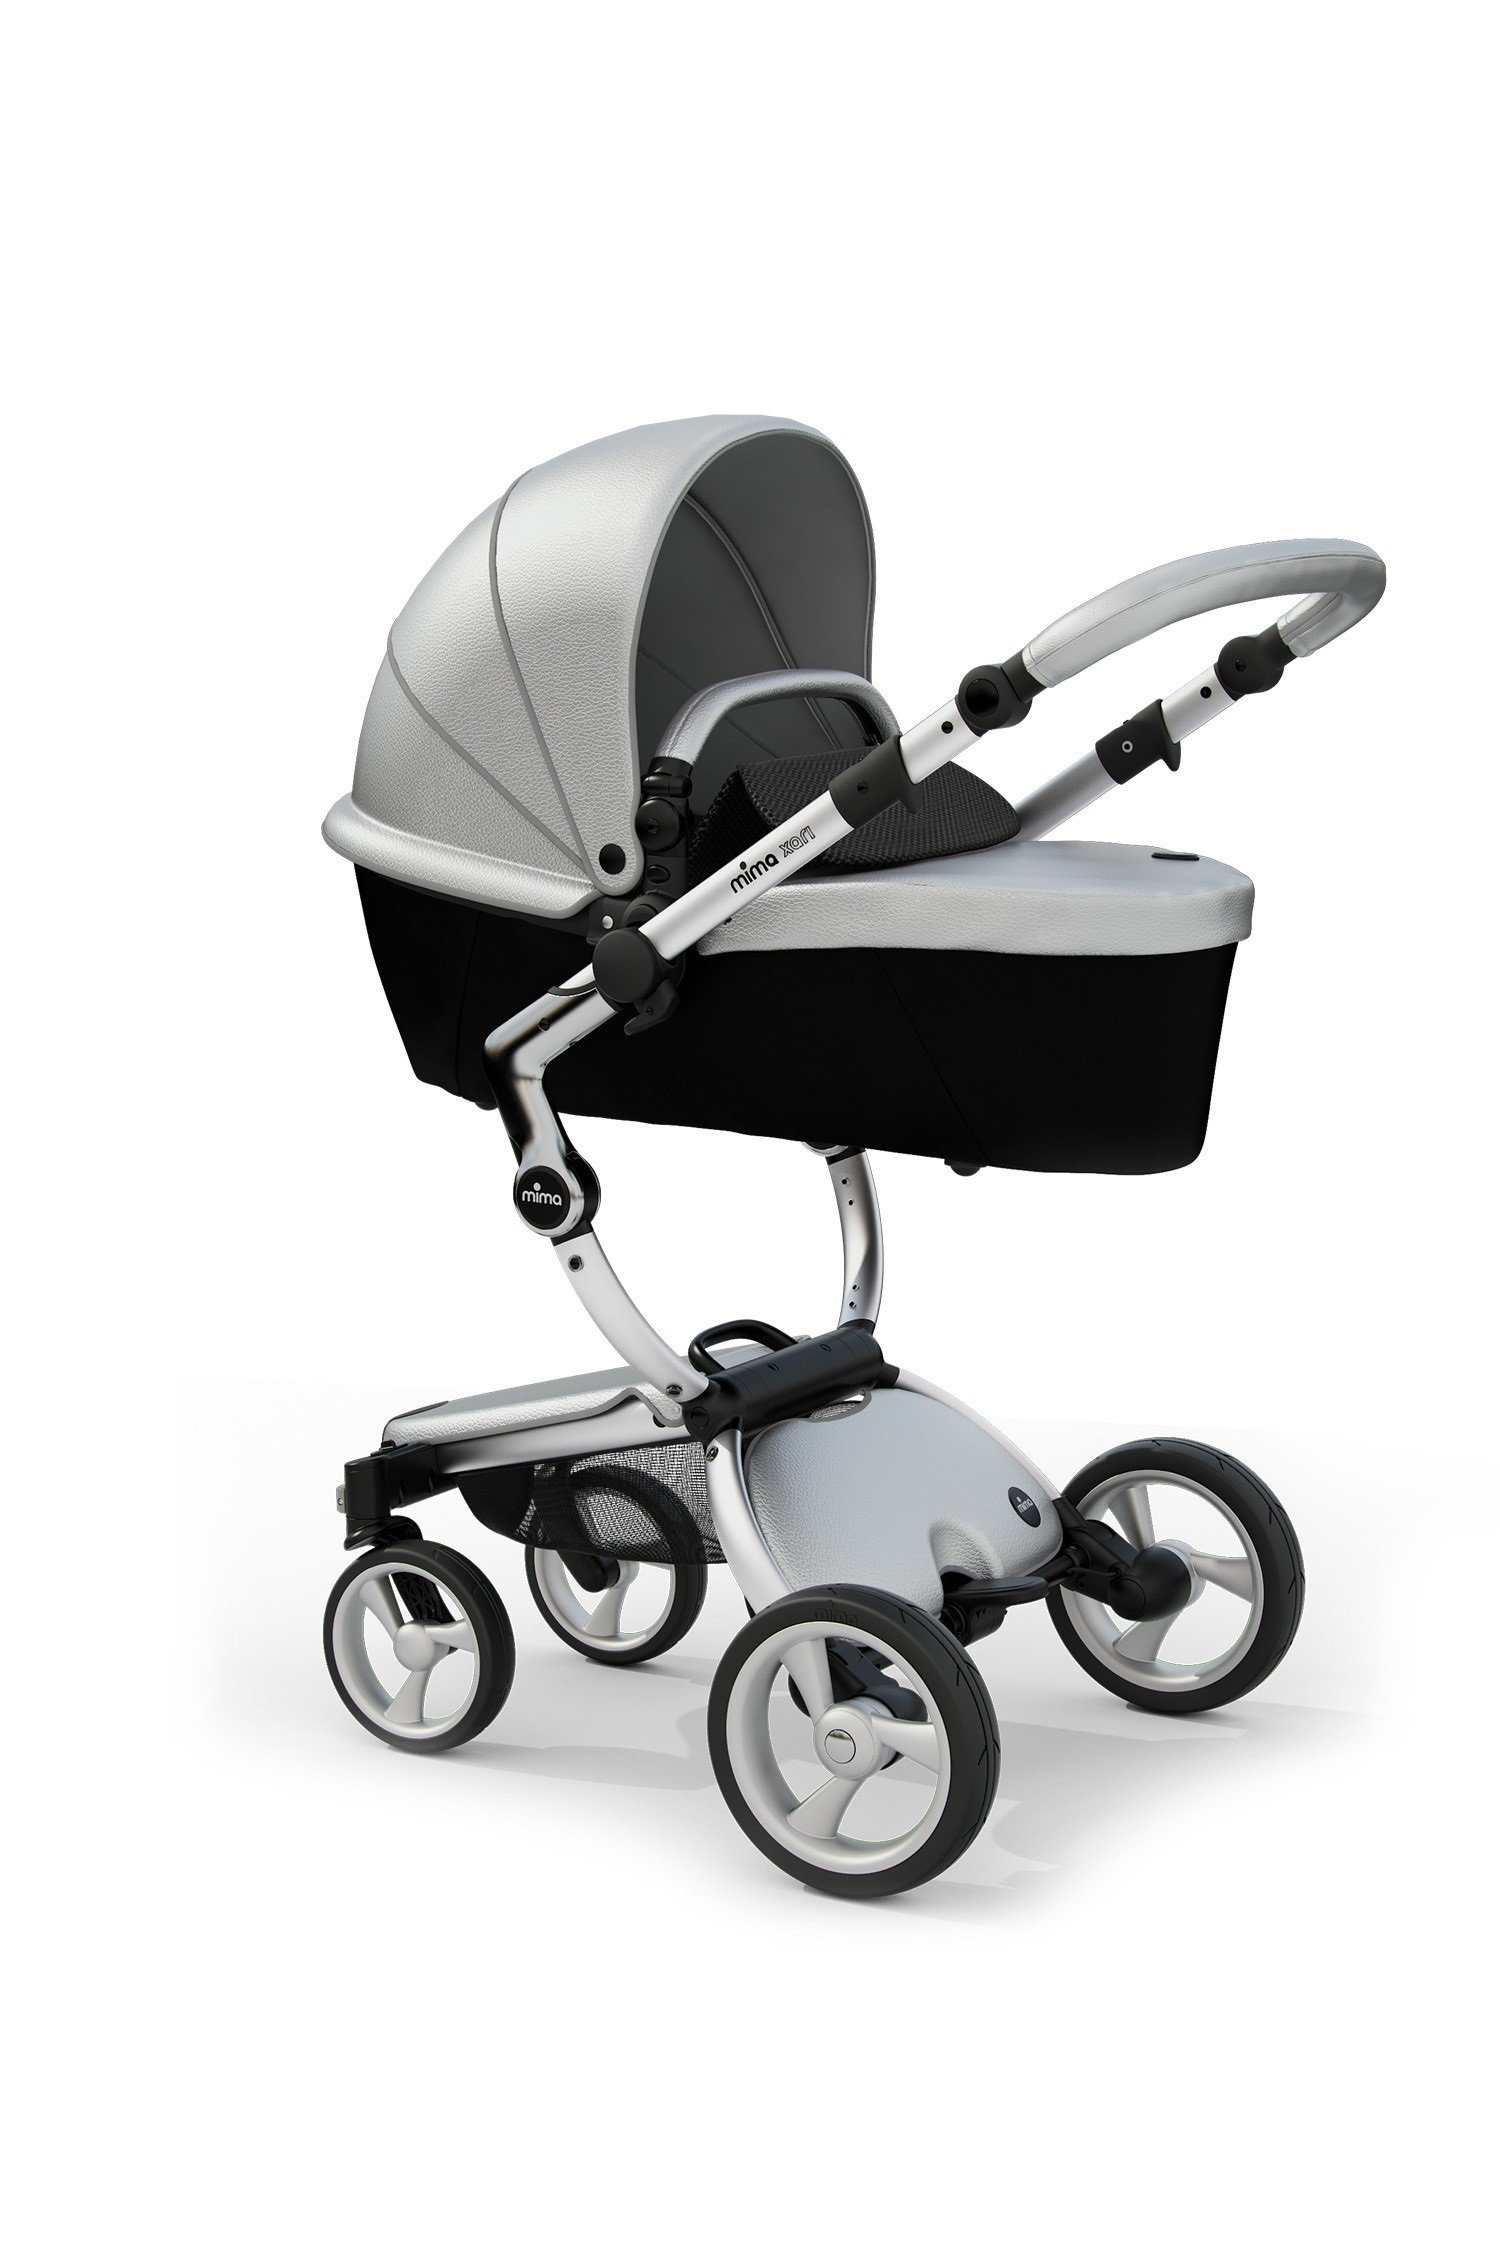 Mima Xari Stroller Authorized Seller ( Aluminum Chassis, Argento seat, Black Starter Pack by Mima (Image #2)